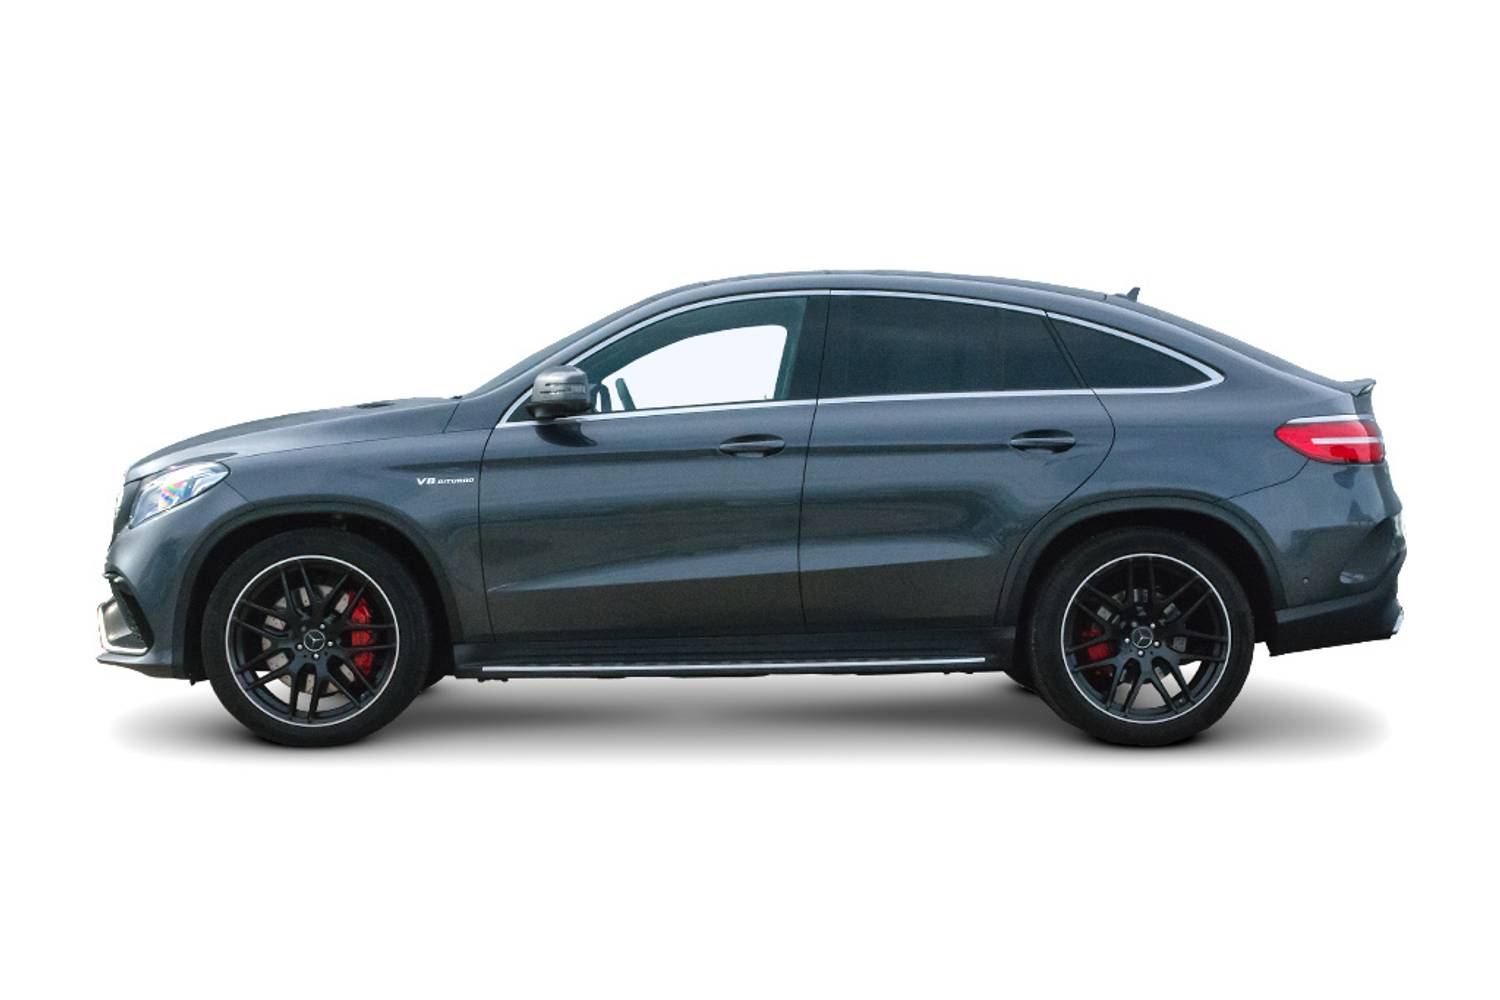 new mercedes benz gle amg coupe gle 43 4matic night edition 5 door 9g tronic 2018 for sale. Black Bedroom Furniture Sets. Home Design Ideas